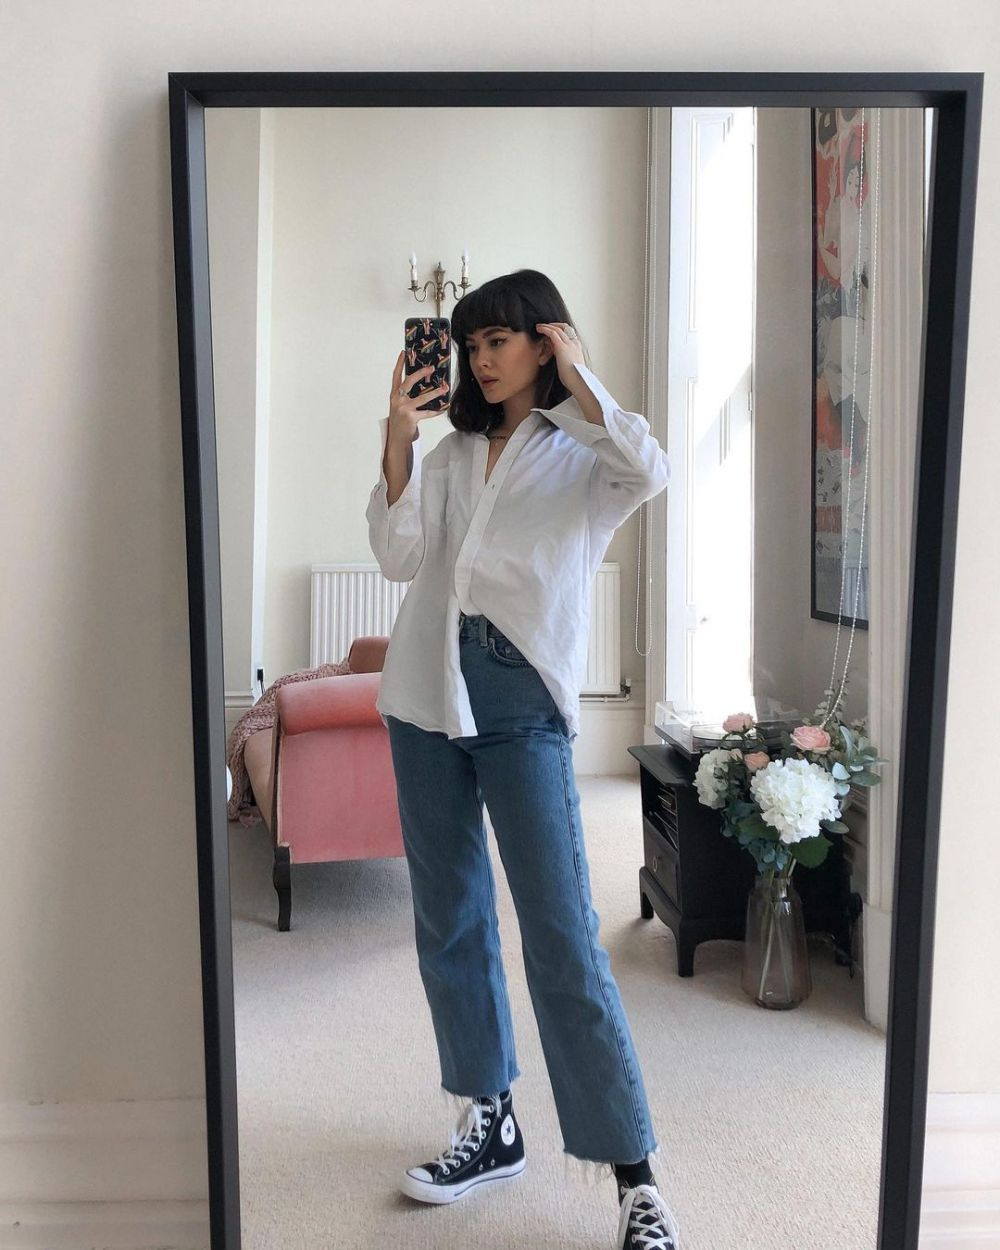 Dukung Sustainable Fashion, 8 Ide Outfit dengan High Waist Denim